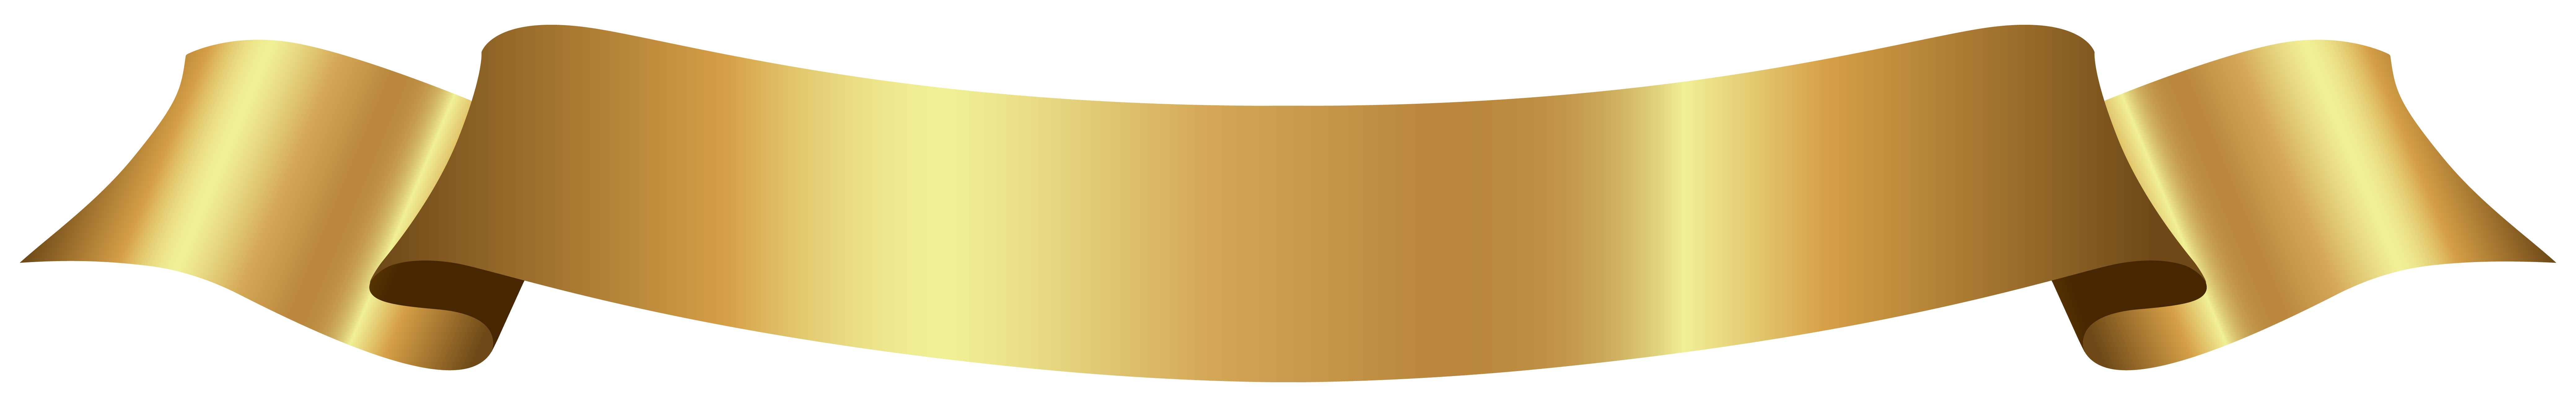 Gold banner ribbon png. Theveliger cliparts free download